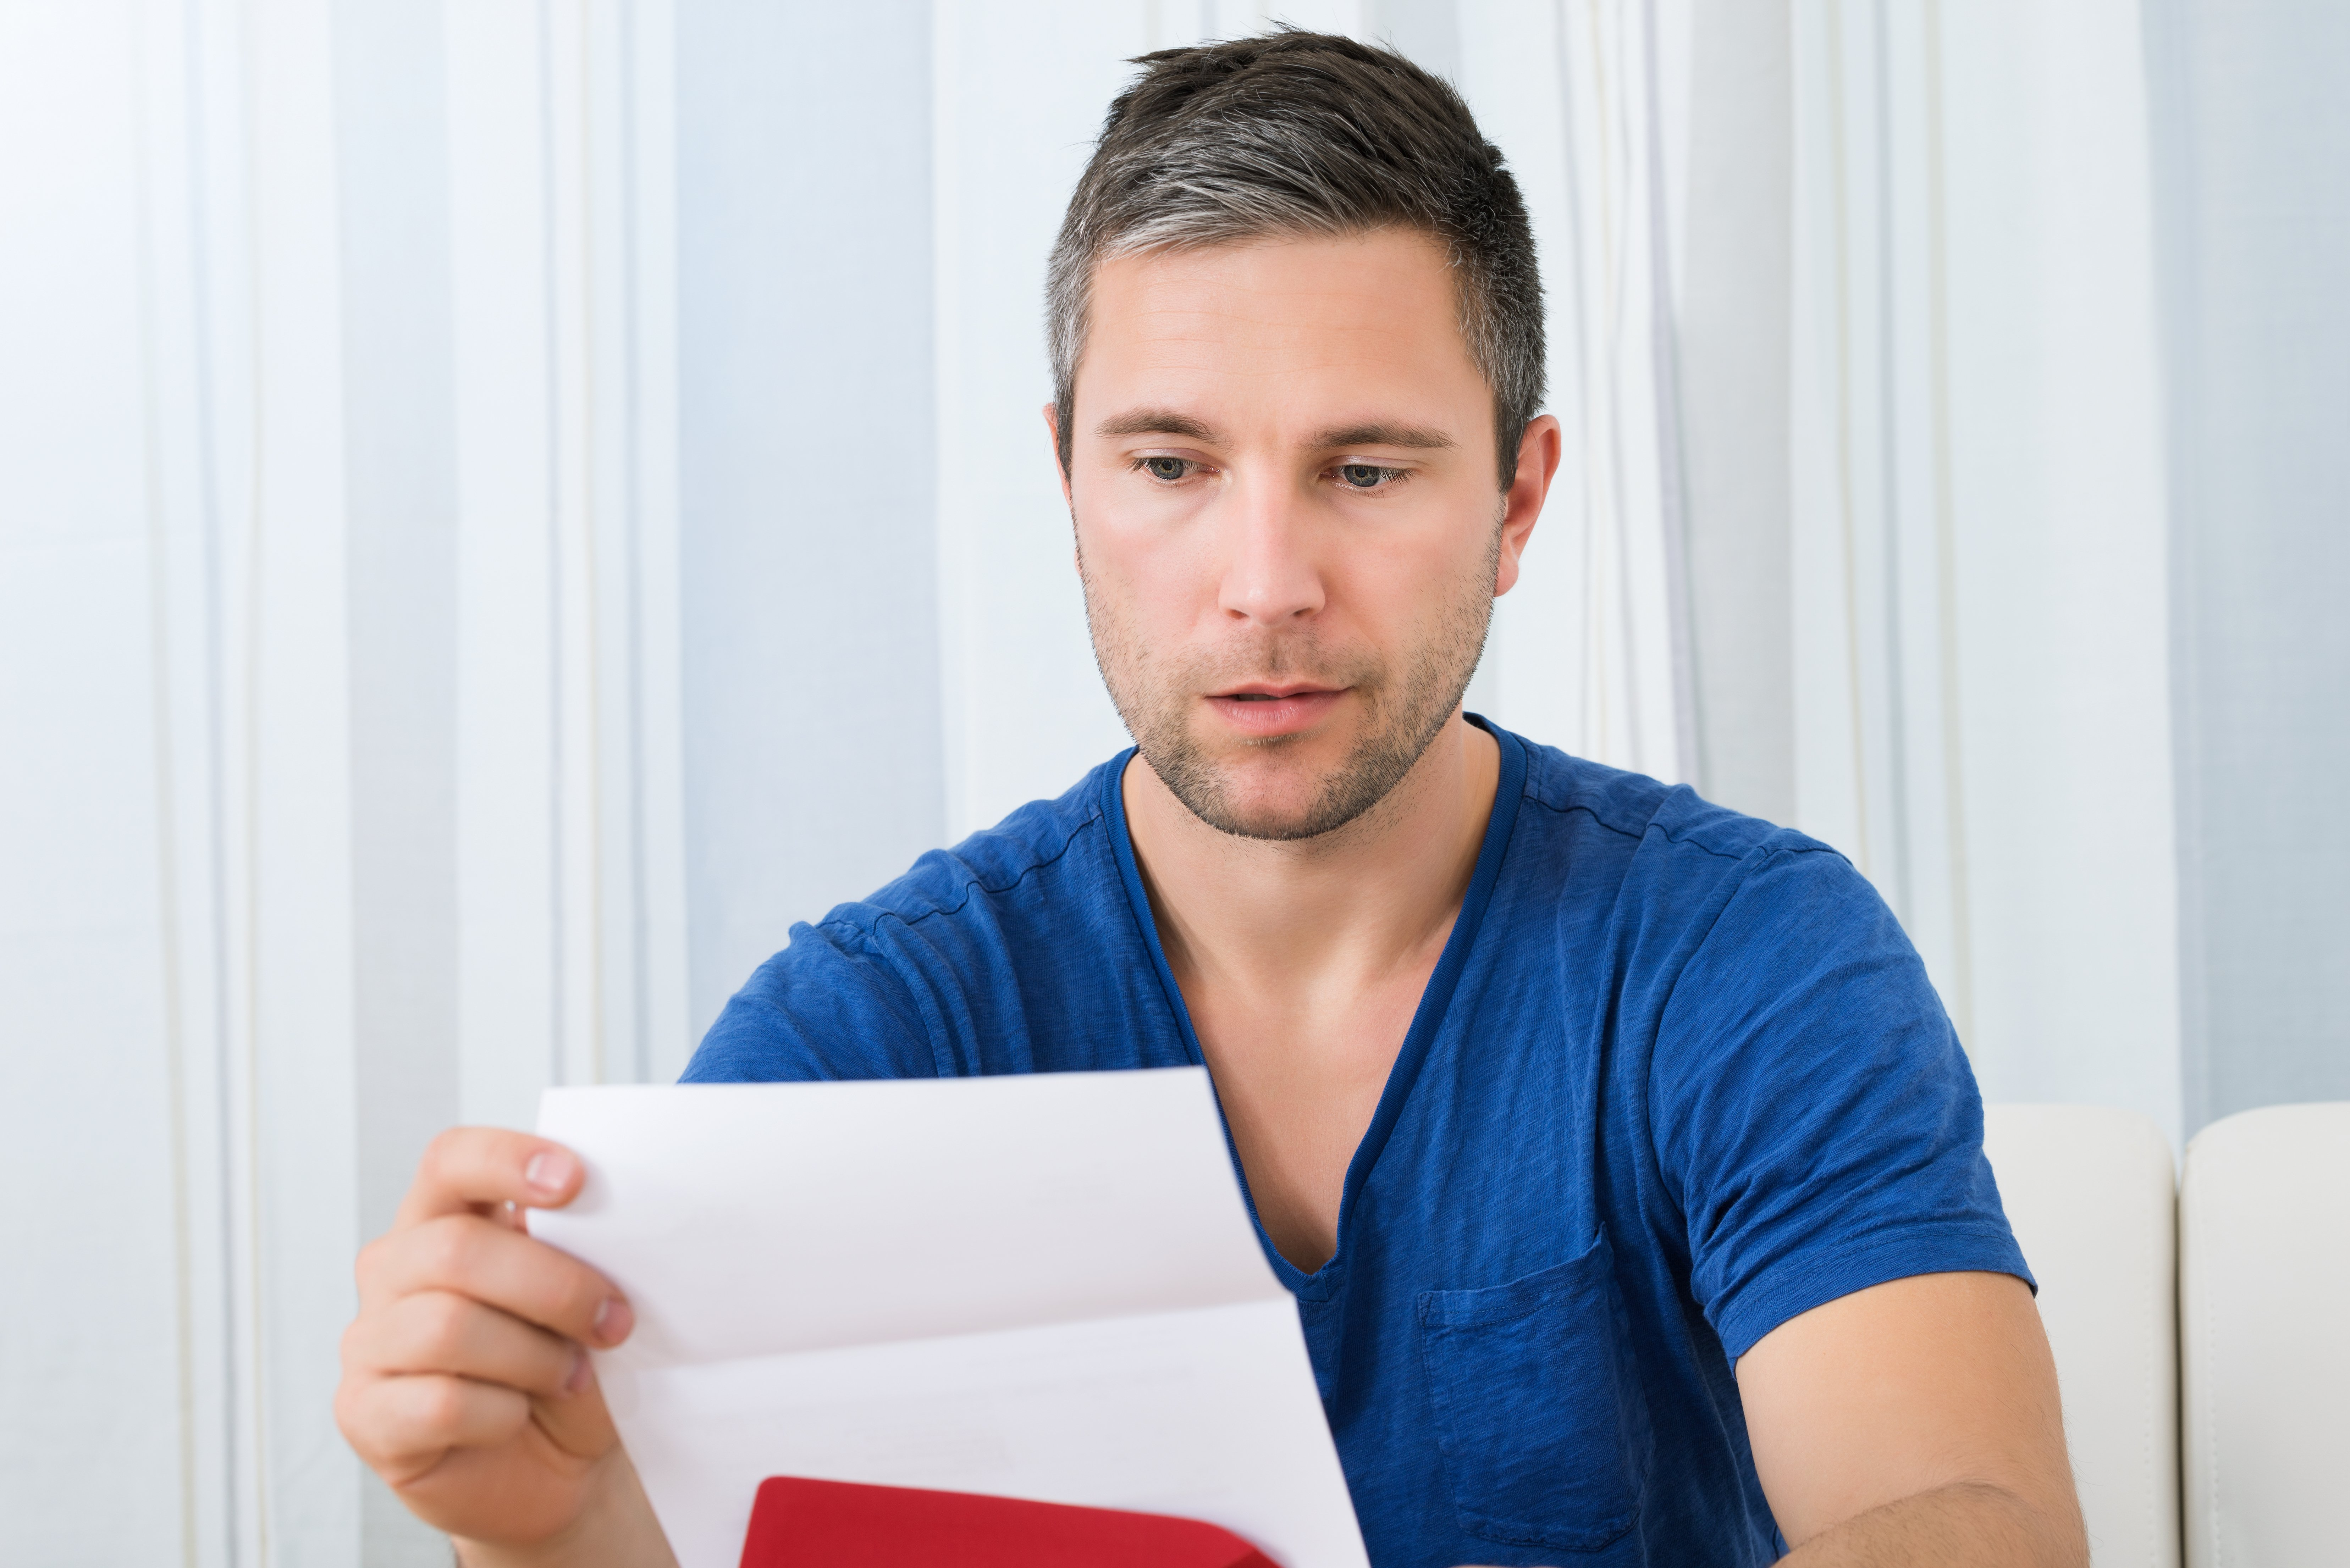 Portrait Of Unhappy Man Sitting On Sofa Reading A Piece of Paper | Photo: Shutterstock.com